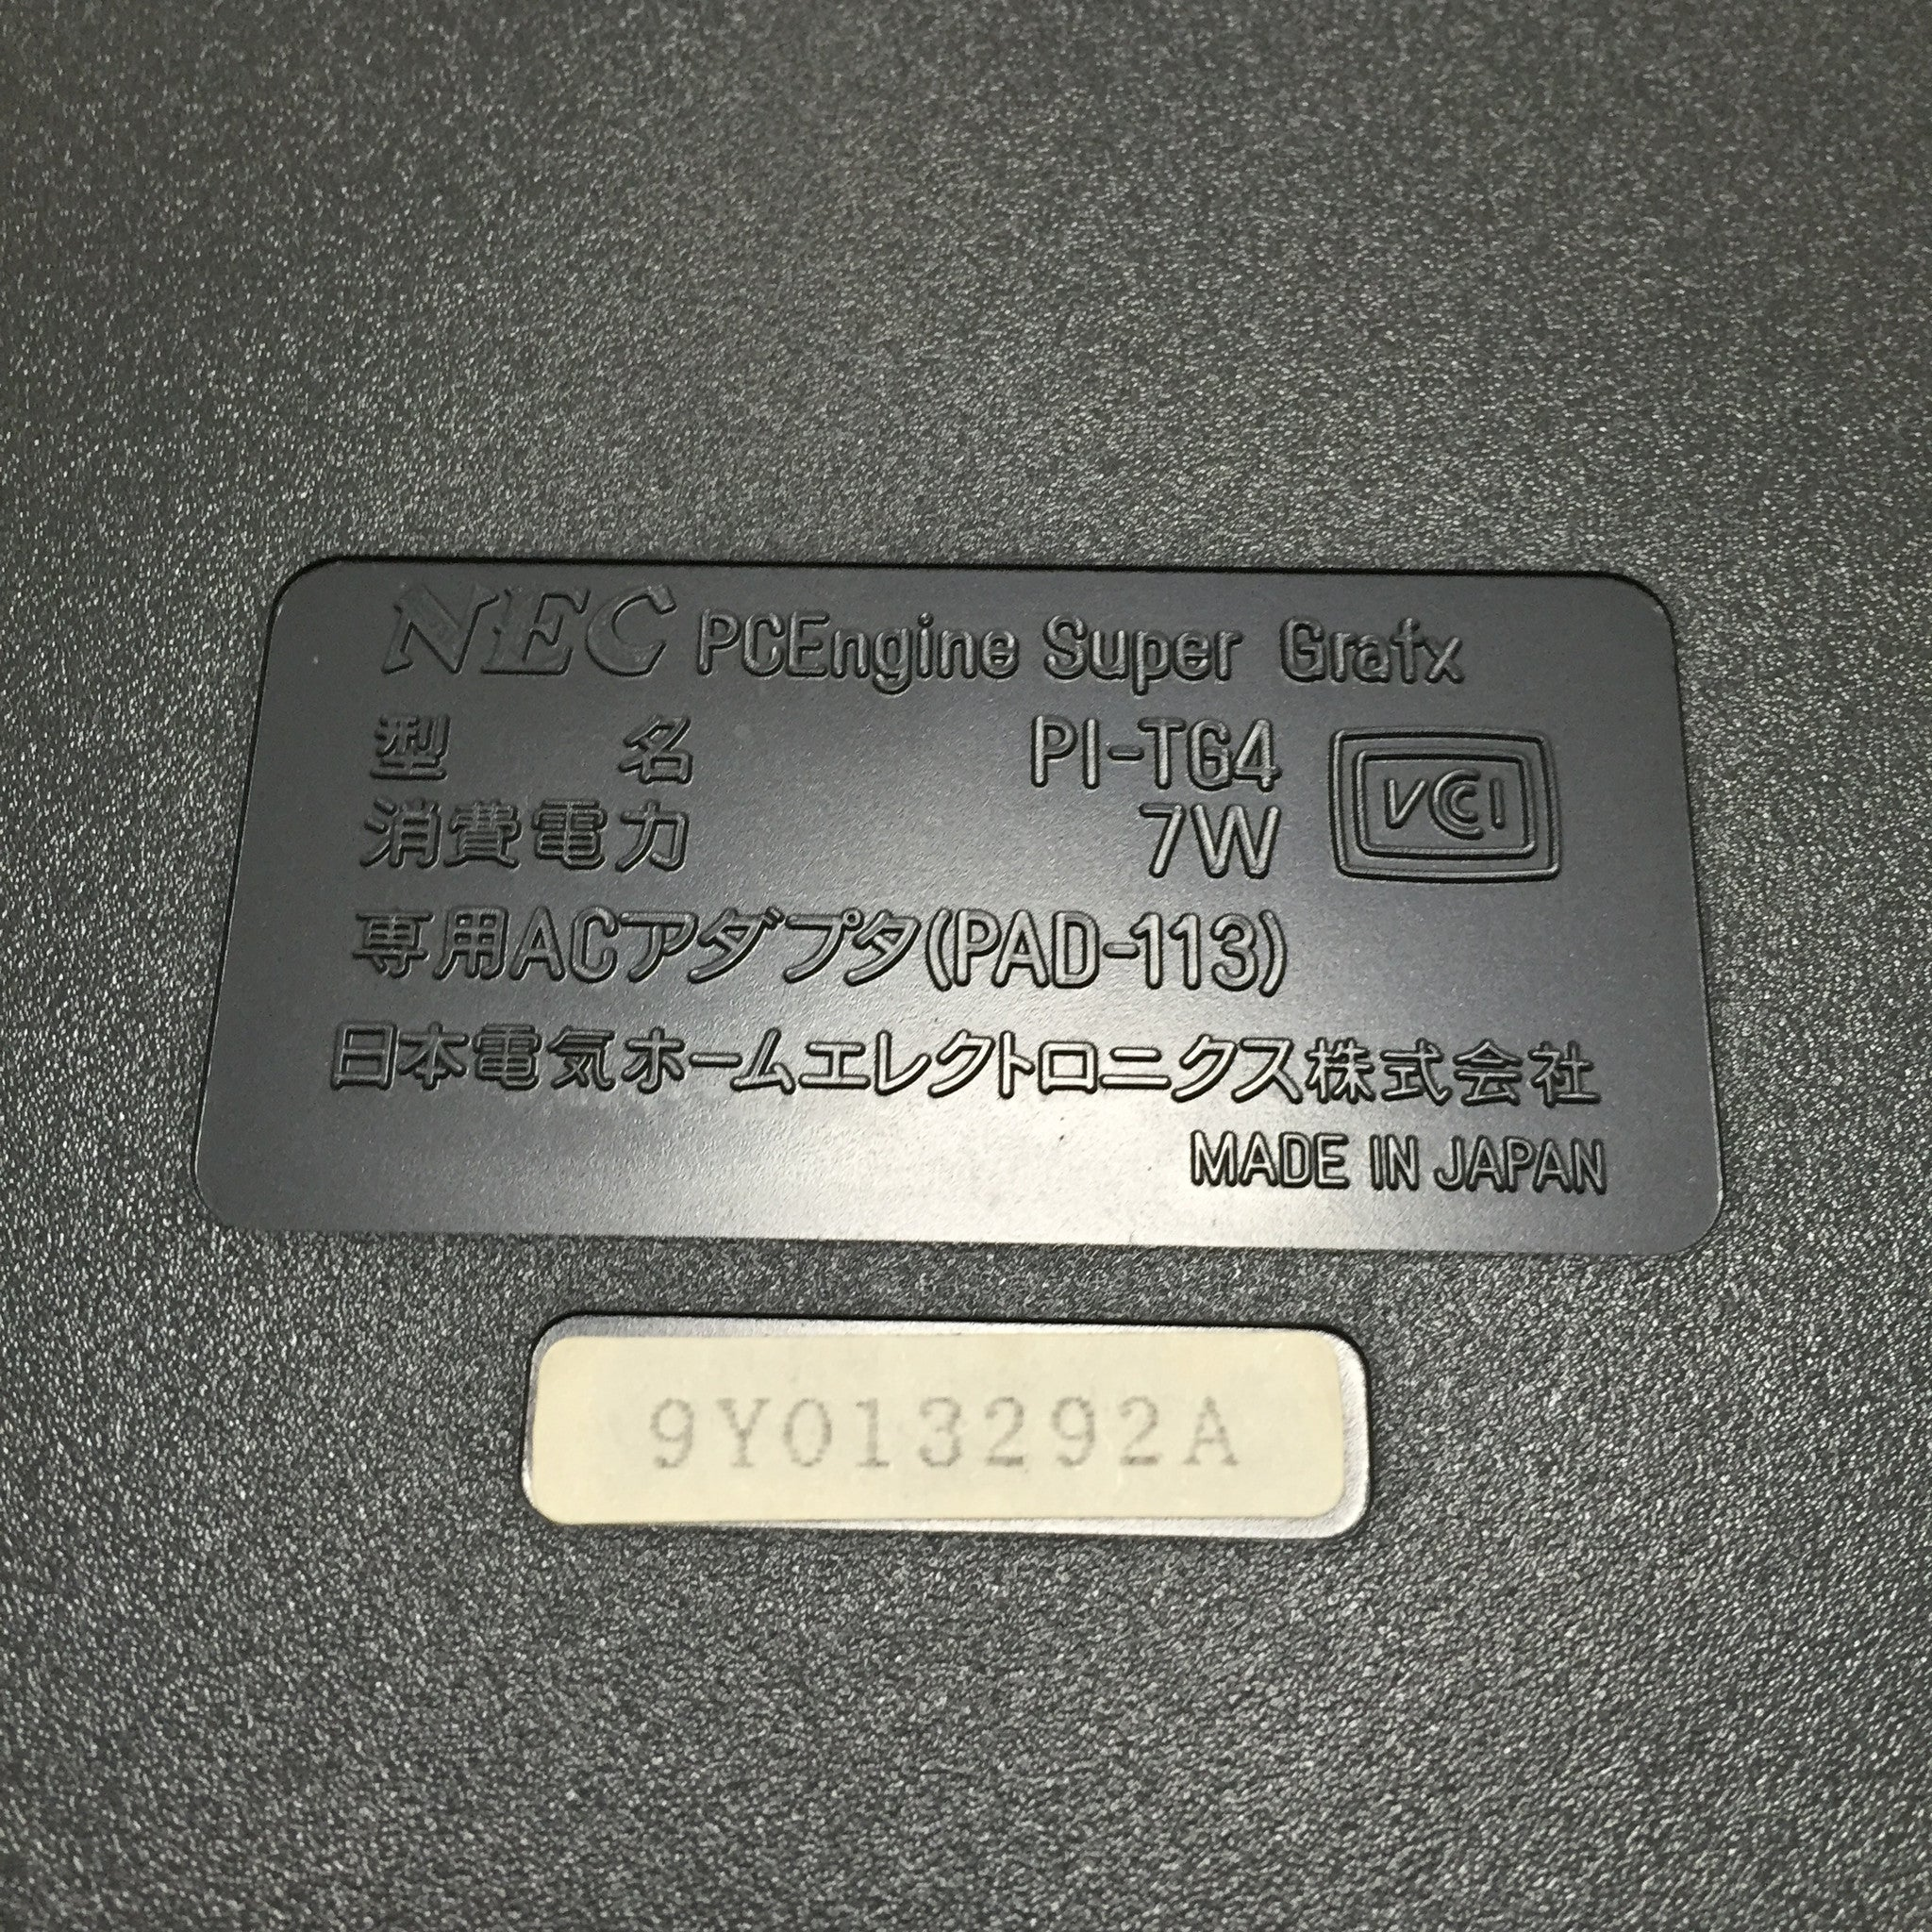 Super Grafx System with Daimakaimura